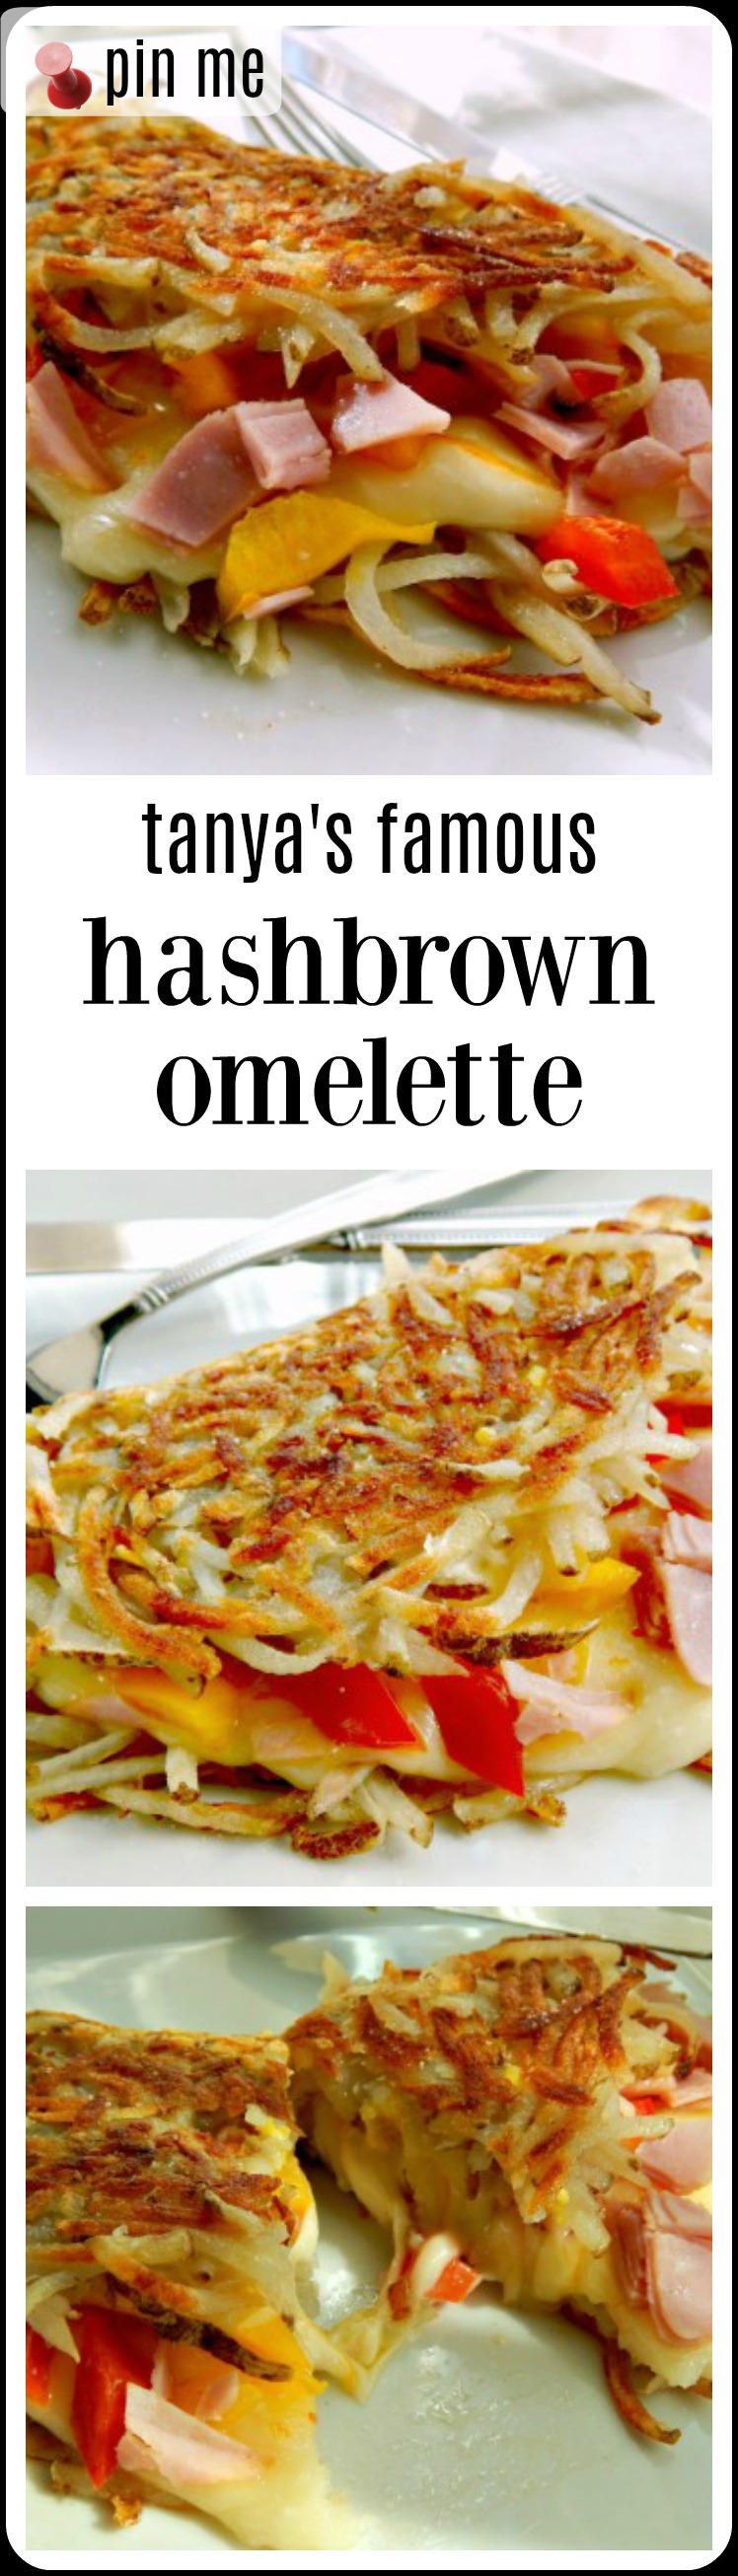 This is a hashbrown omelet. A layer of beautifully cooked hash browned potatoes topped by a thin layer of egg, cheese, ooey and gooey, &a filling of your choice. Then, the whole works is folded over into a crispy, crunchy, on the outside, cheesy, creamy, on the inside, breakfast. #HashbrownOmelette #HashbrownOmelet #Hashbrown #Omelet